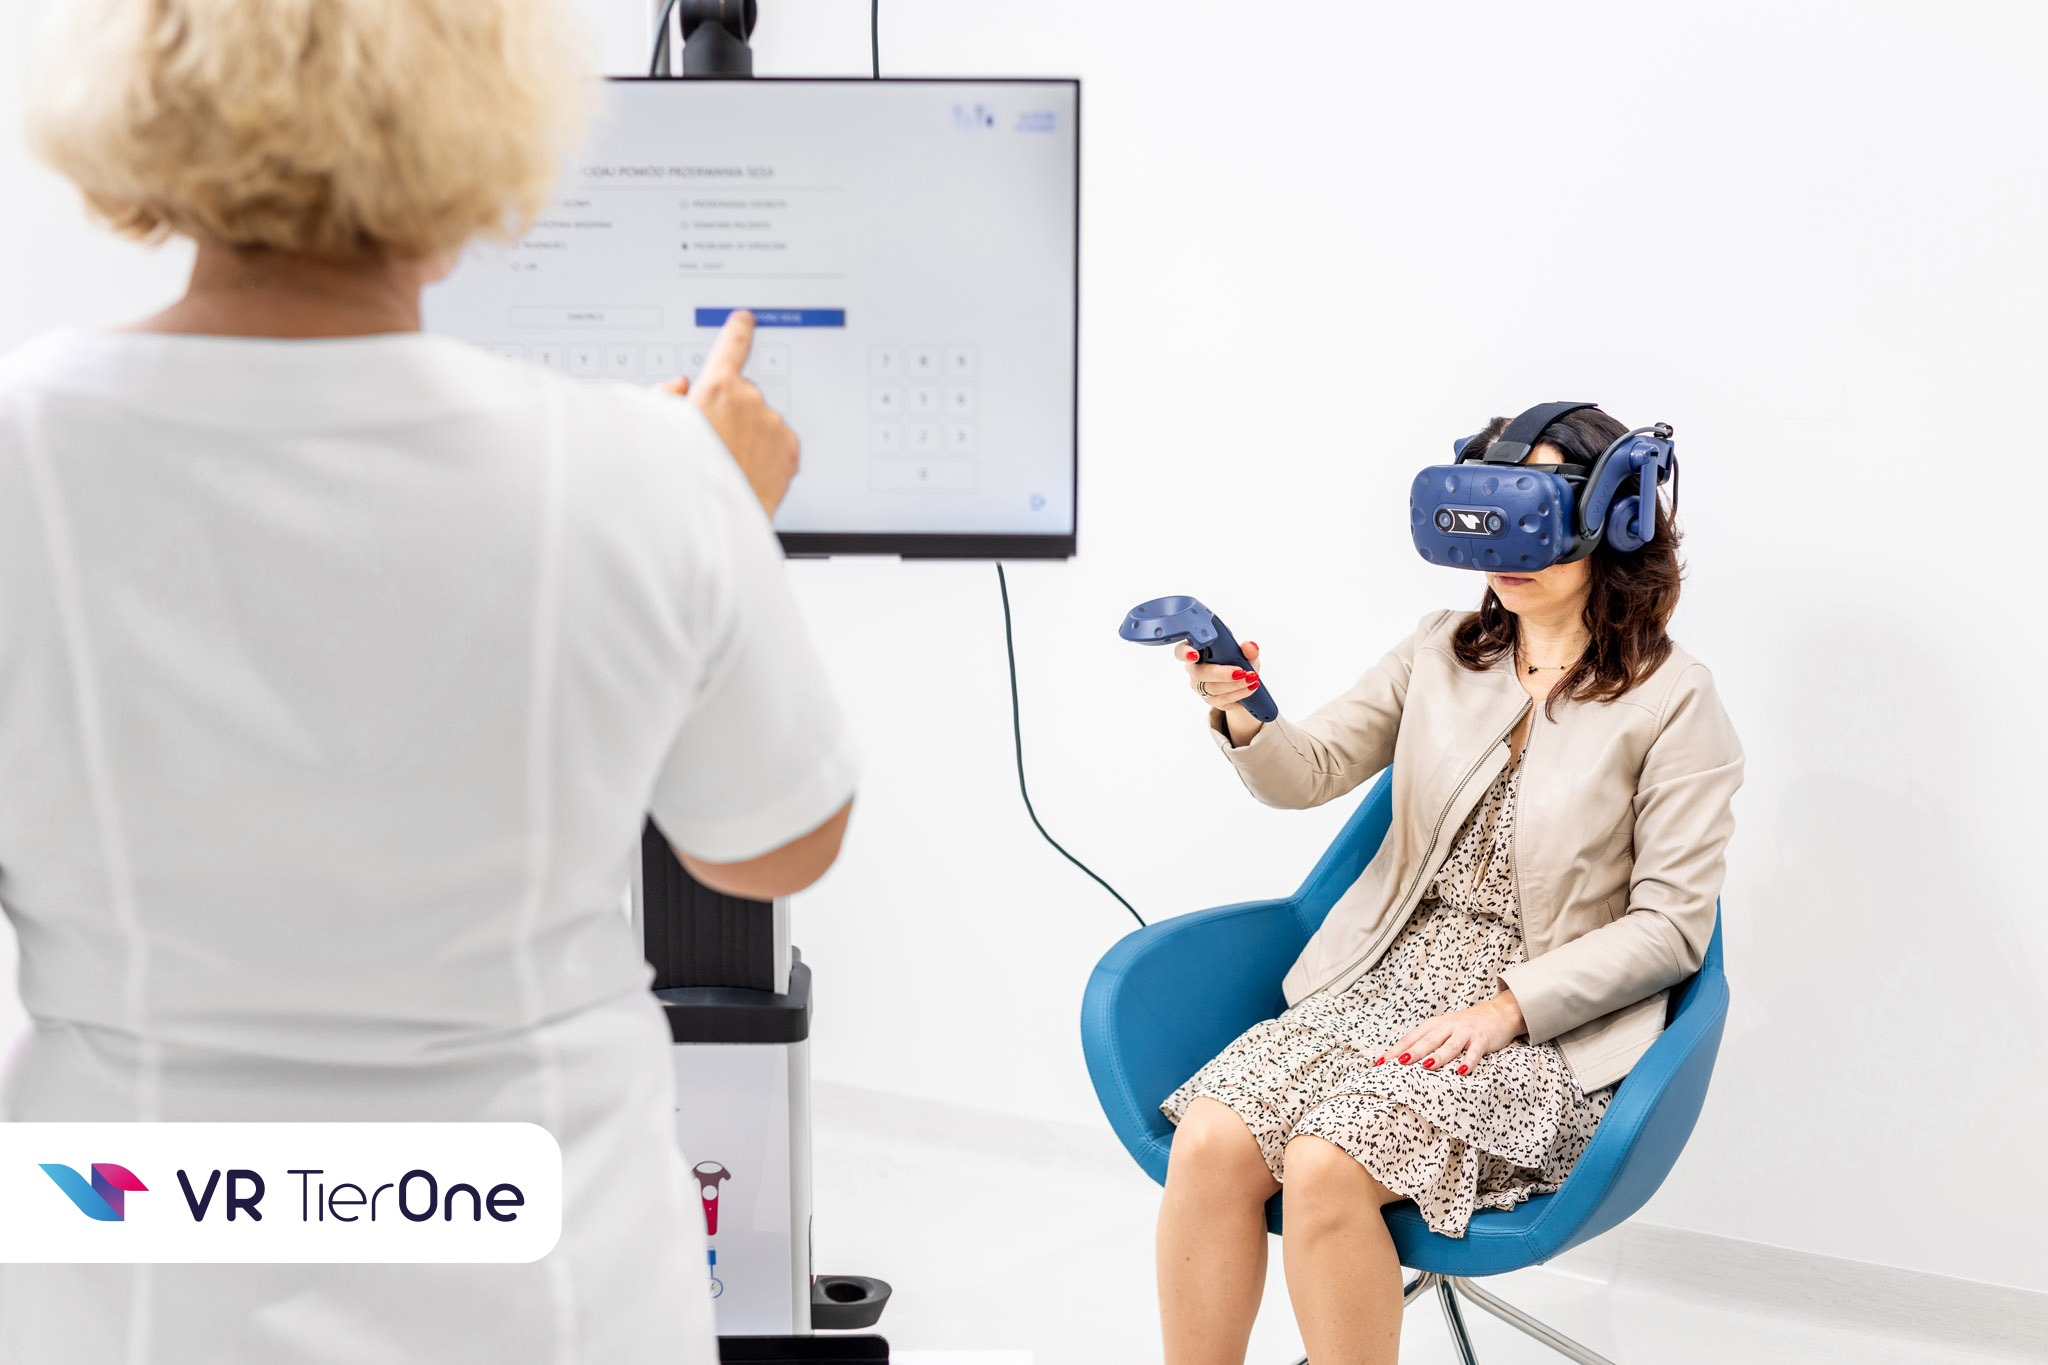 How to work with VR TierOne?